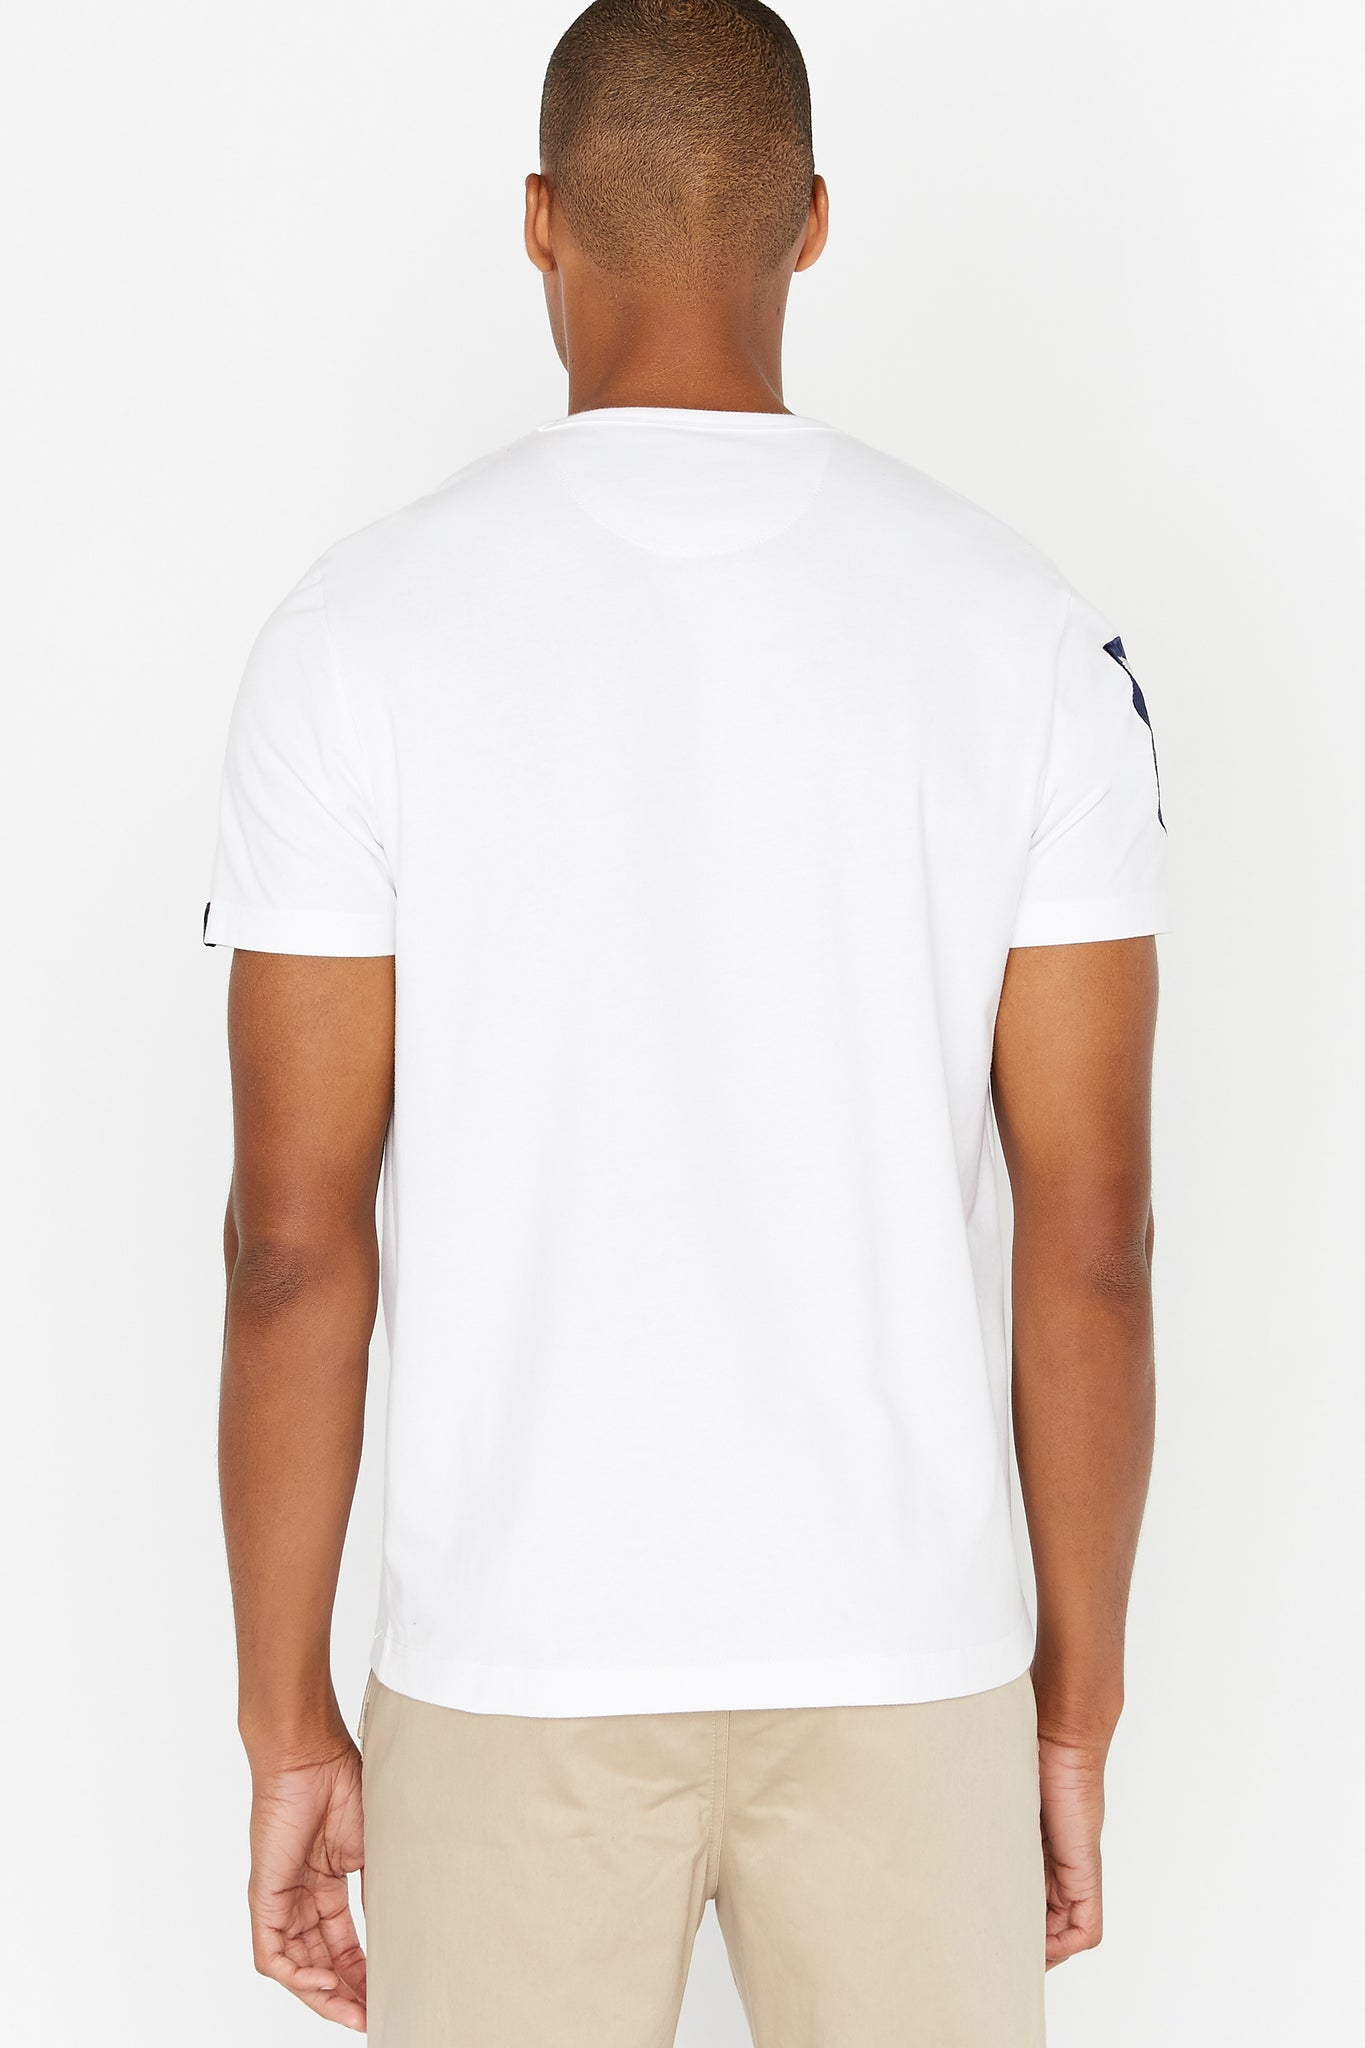 Back view of men wearing a white short sleeve crew T-shirt